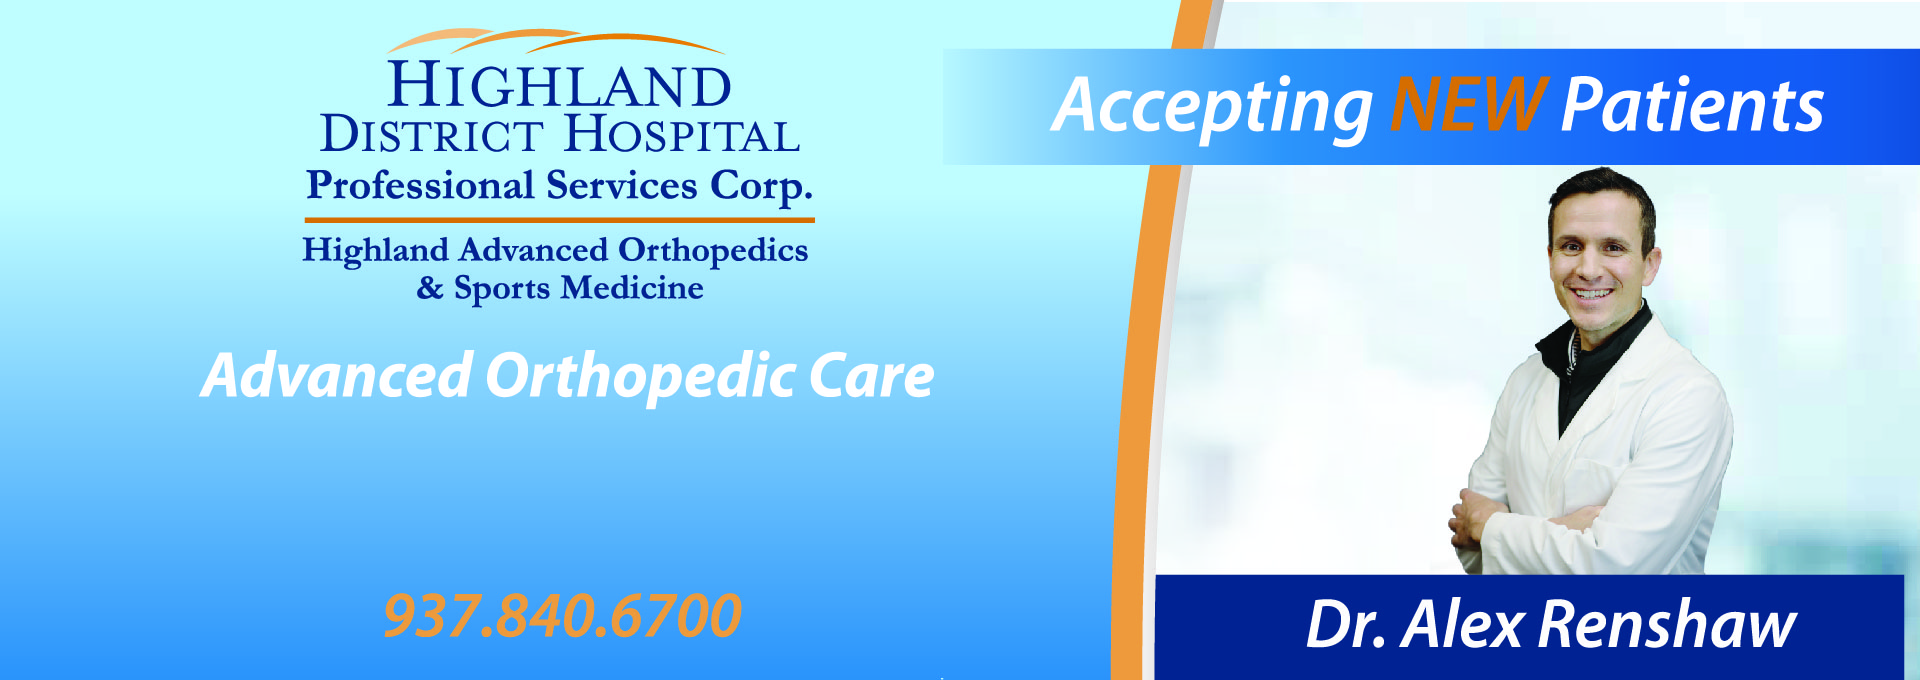 Highland District Hospital Professional Services Corporation Partners with NEW Orthopedic Surgeon